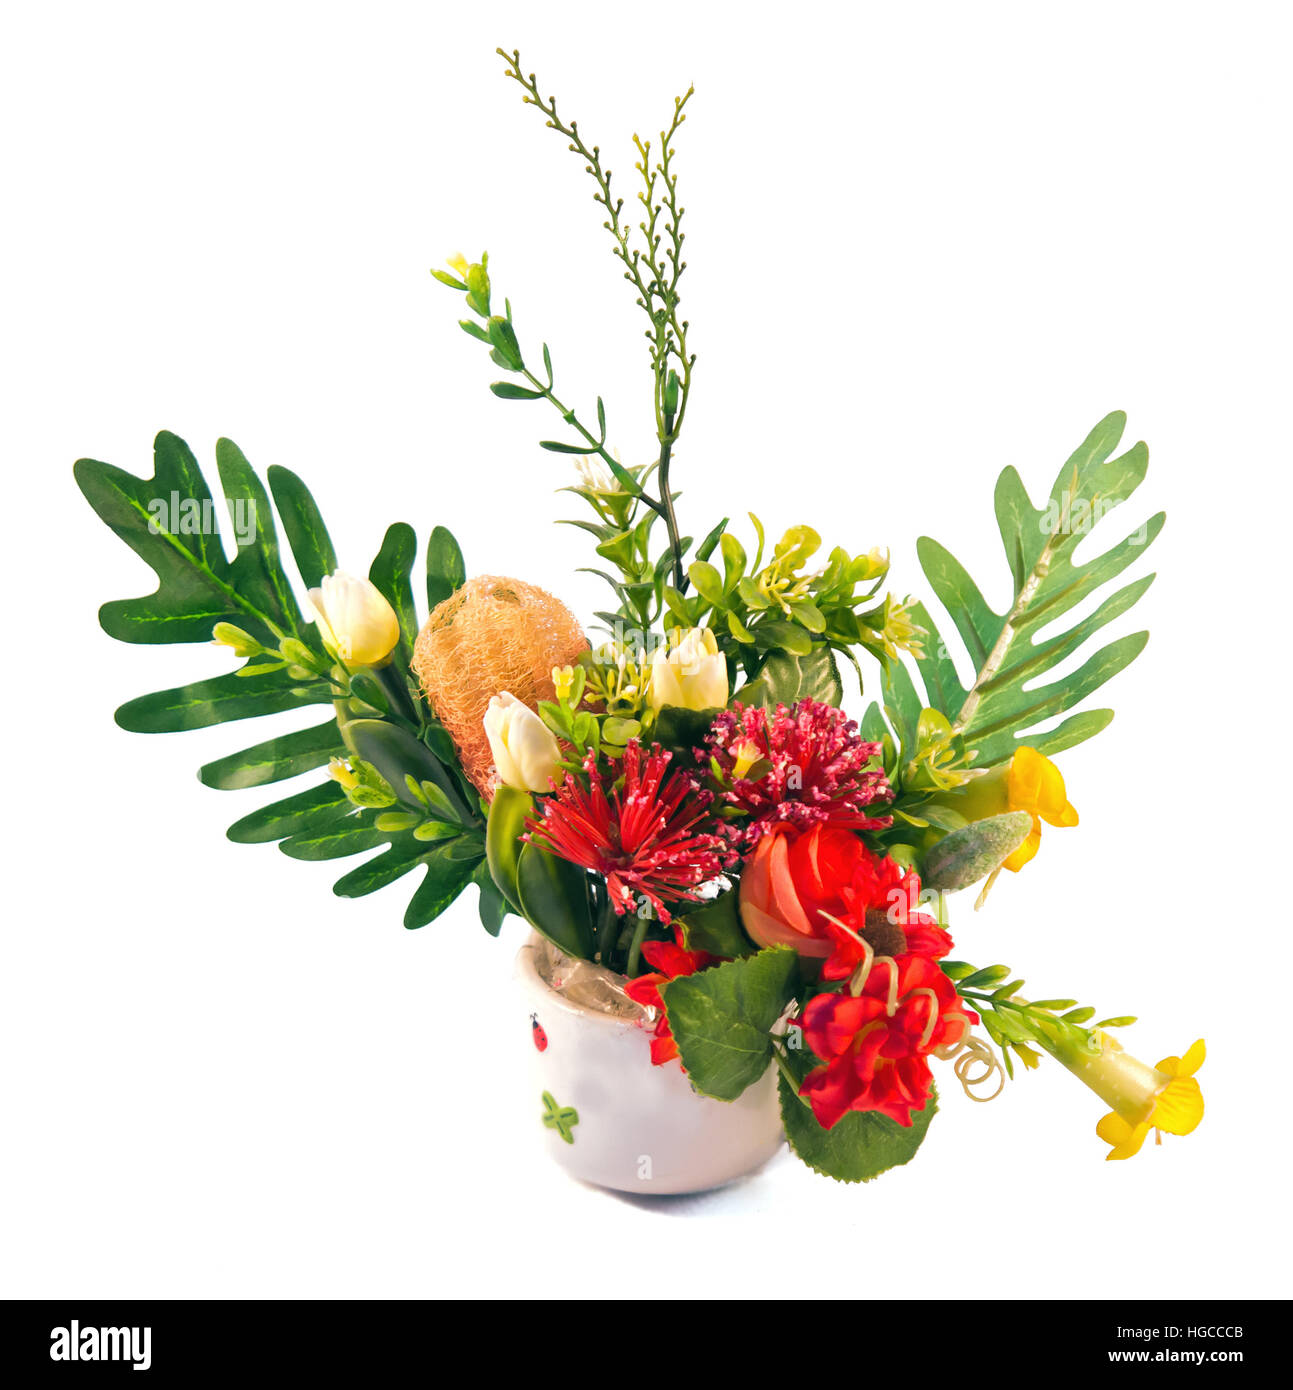 Flowers bouquet arranging in a vase isolated on white for home decoration or graphic resource - Stock Image